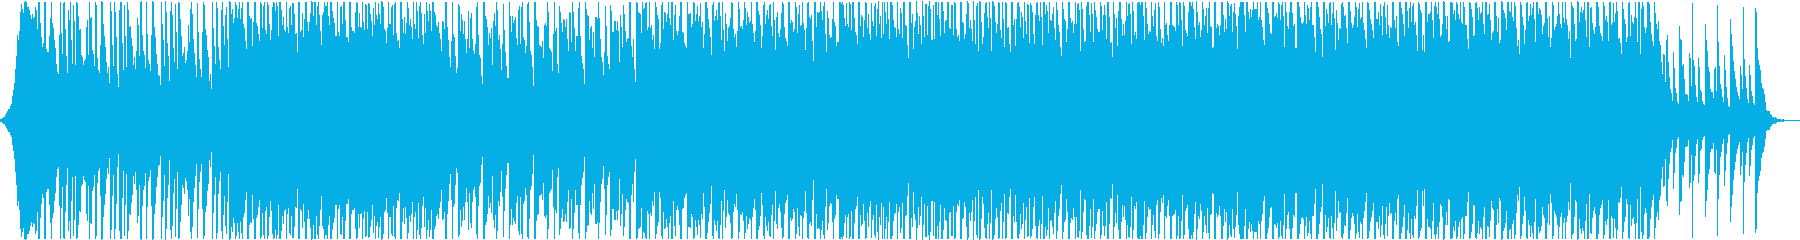 Asian style music's reproduced waveform